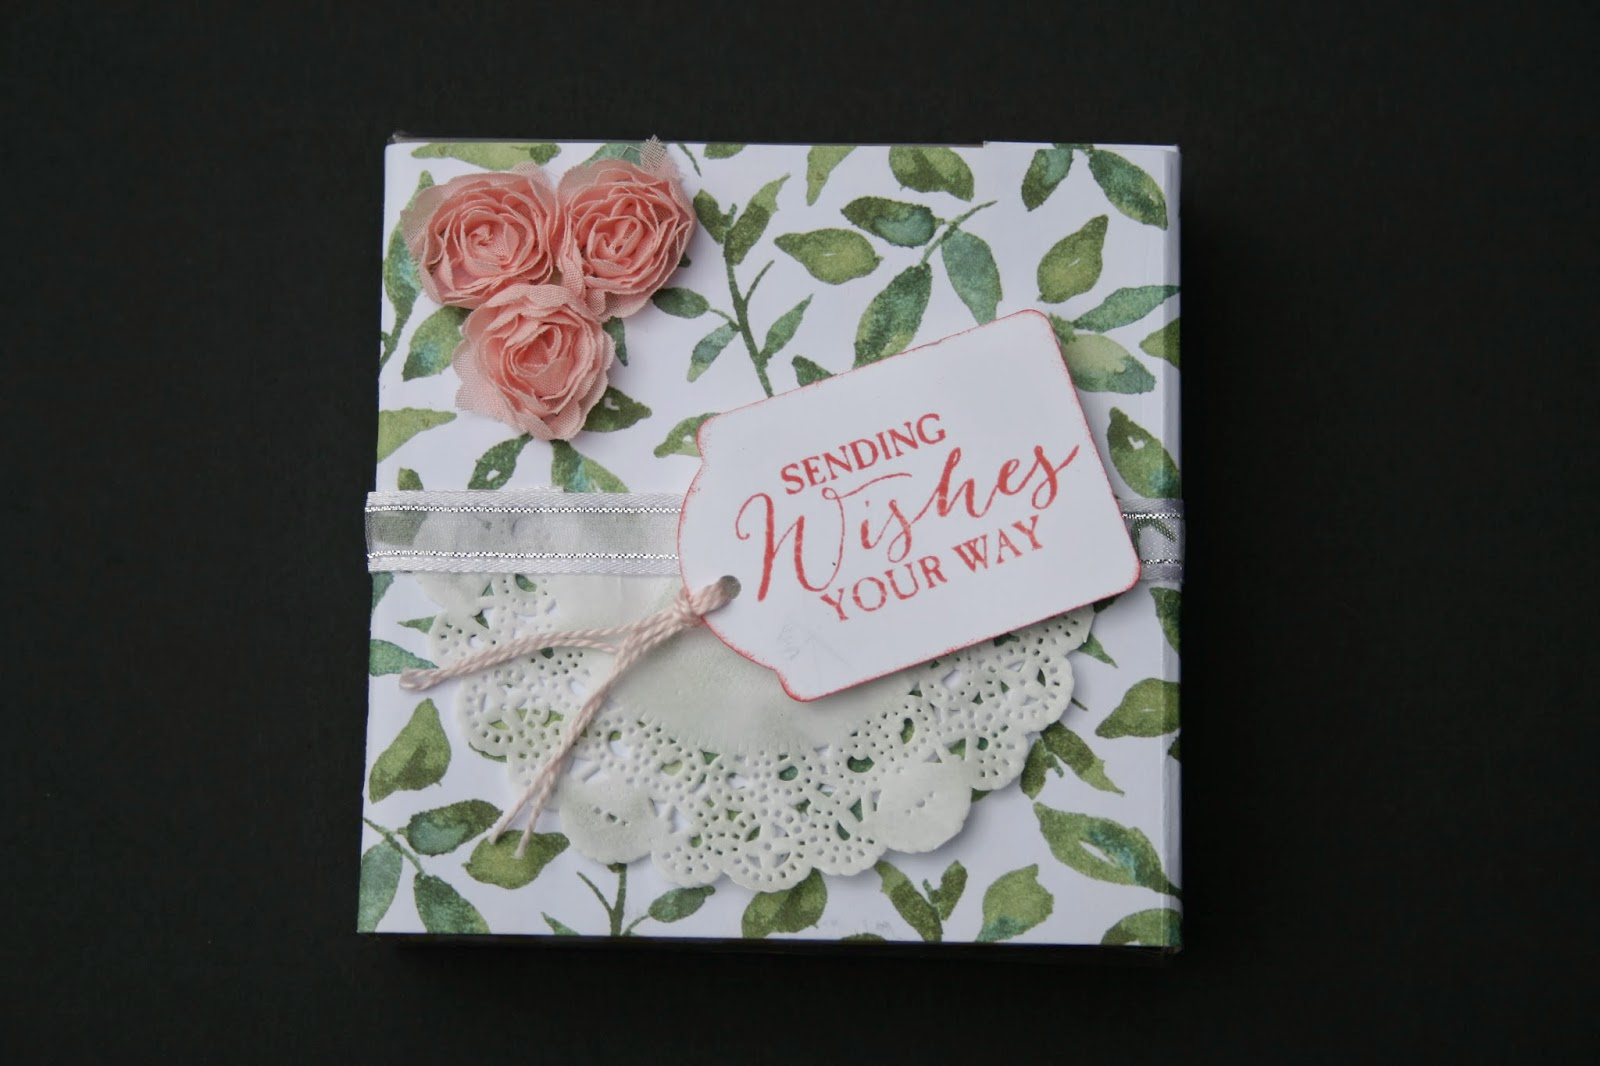 Birthday box using peach roses, doily, stamp